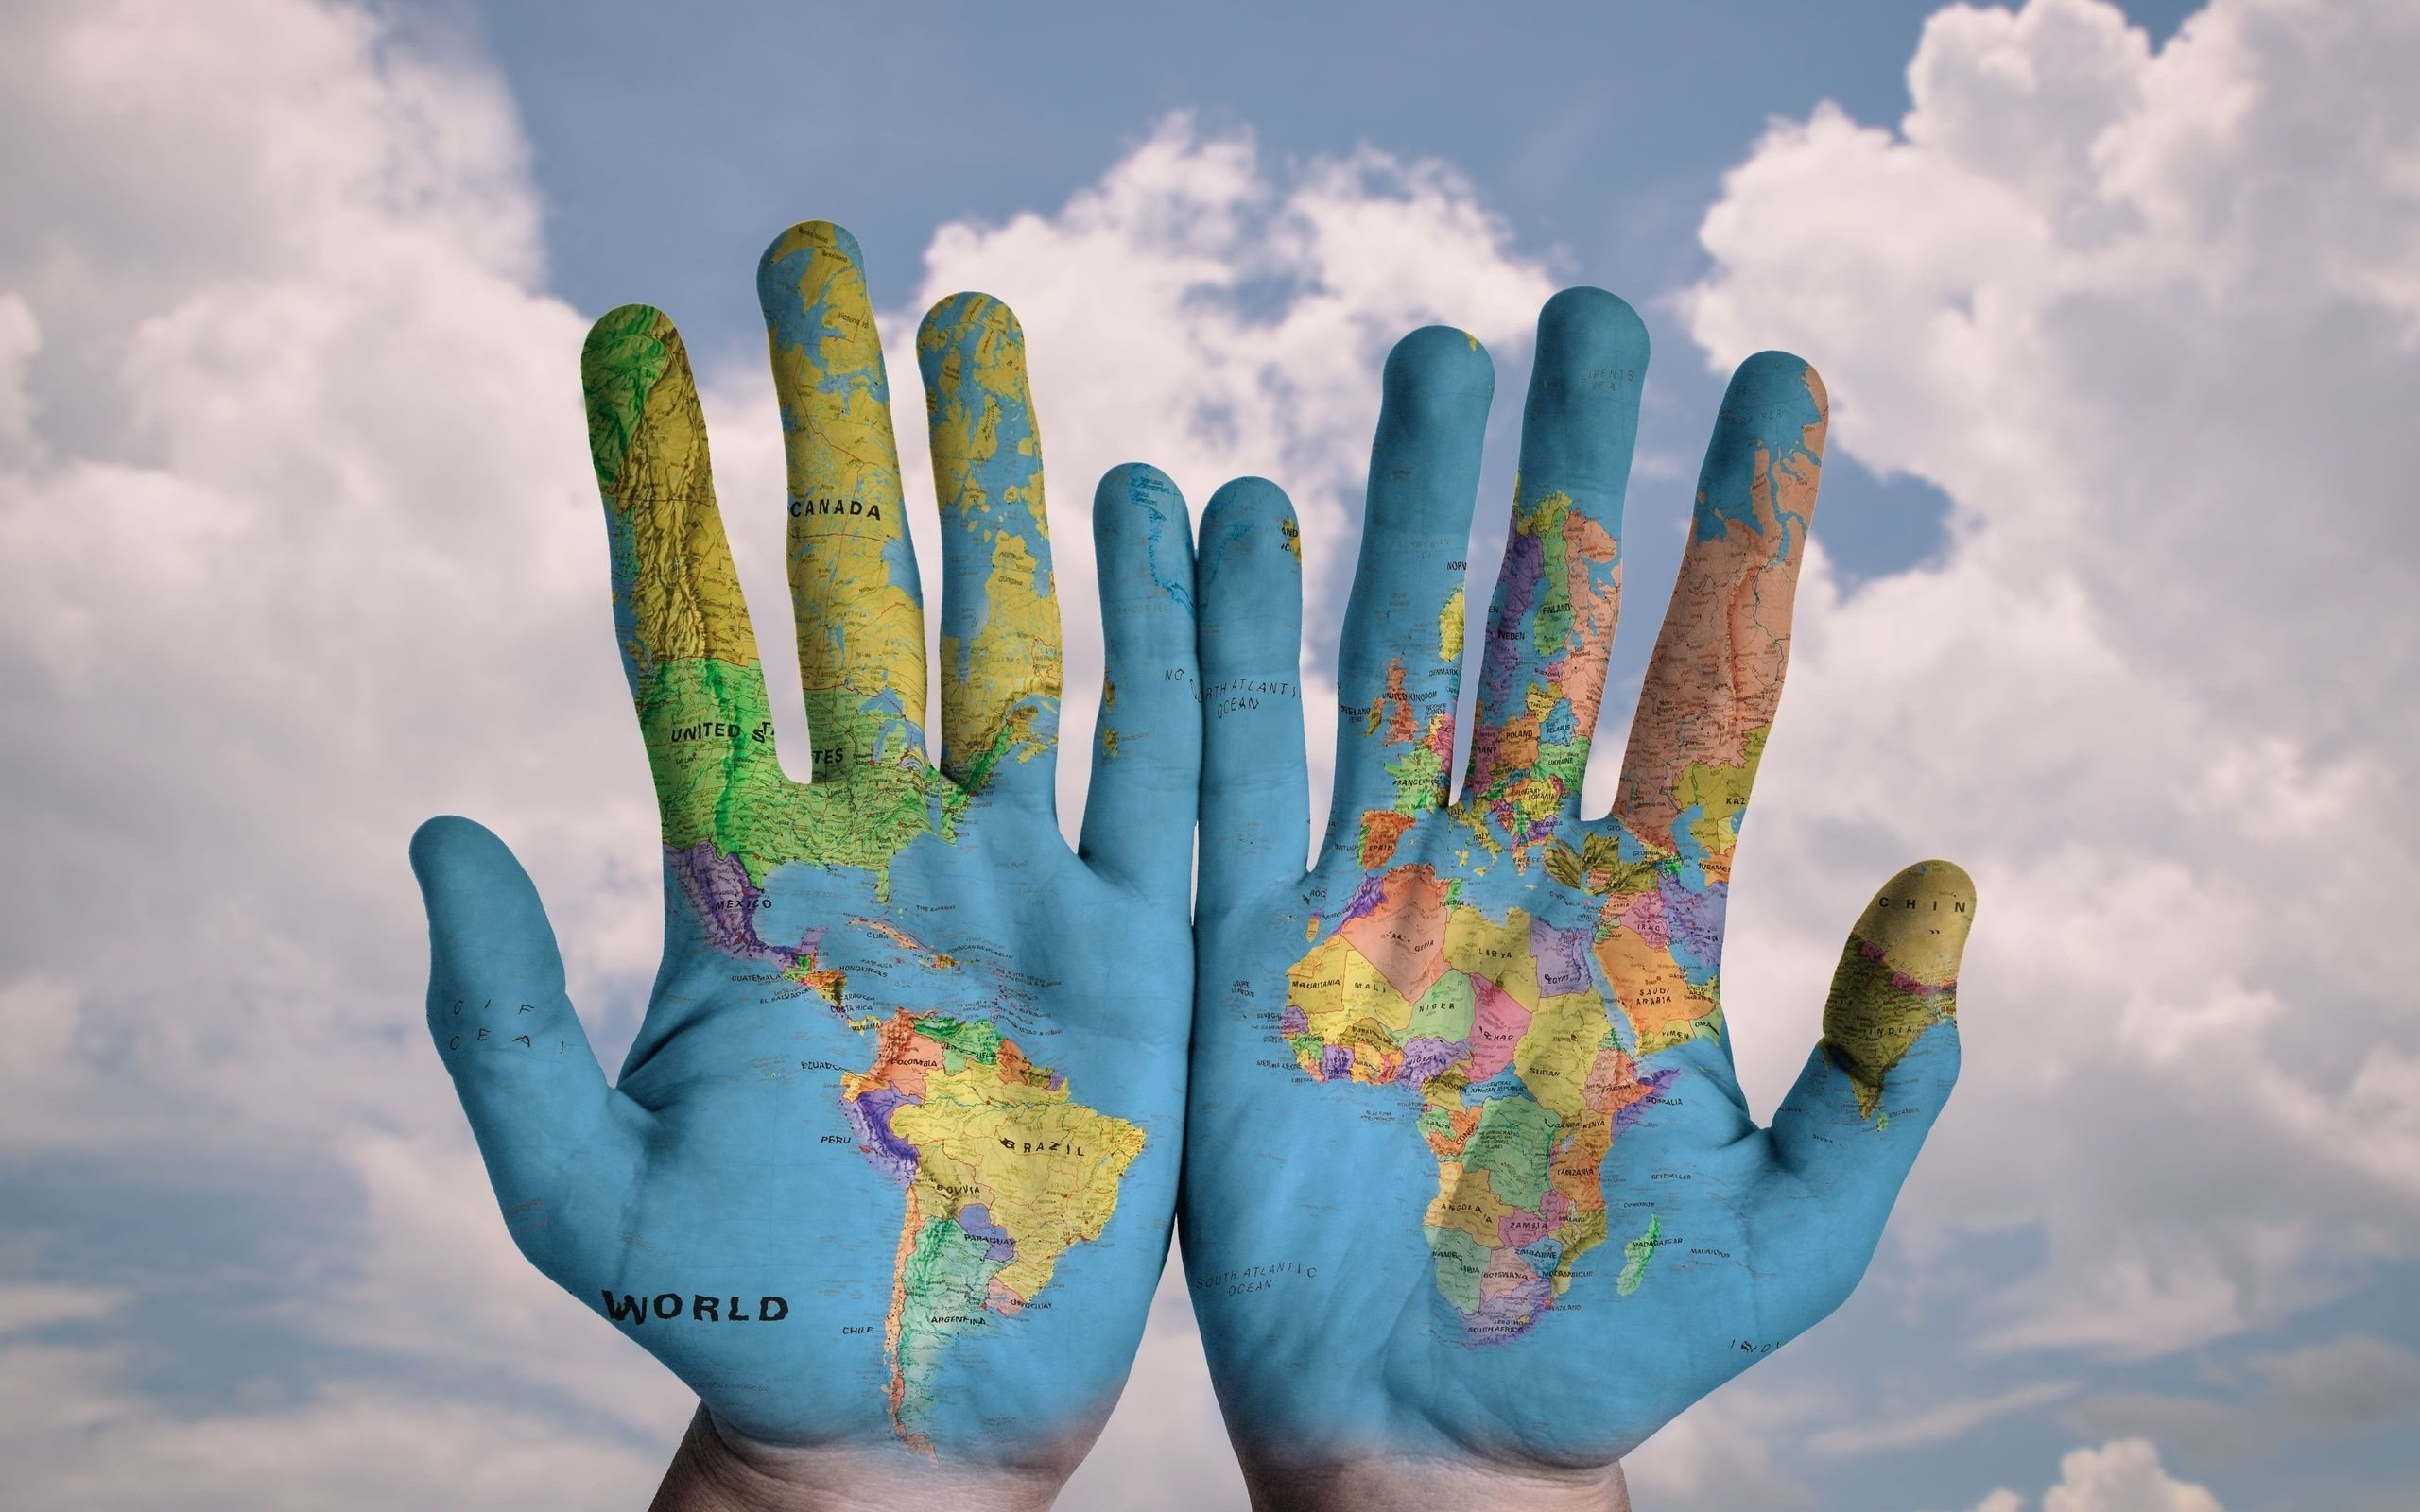 hands-map-palm-world-map-creative.jpg